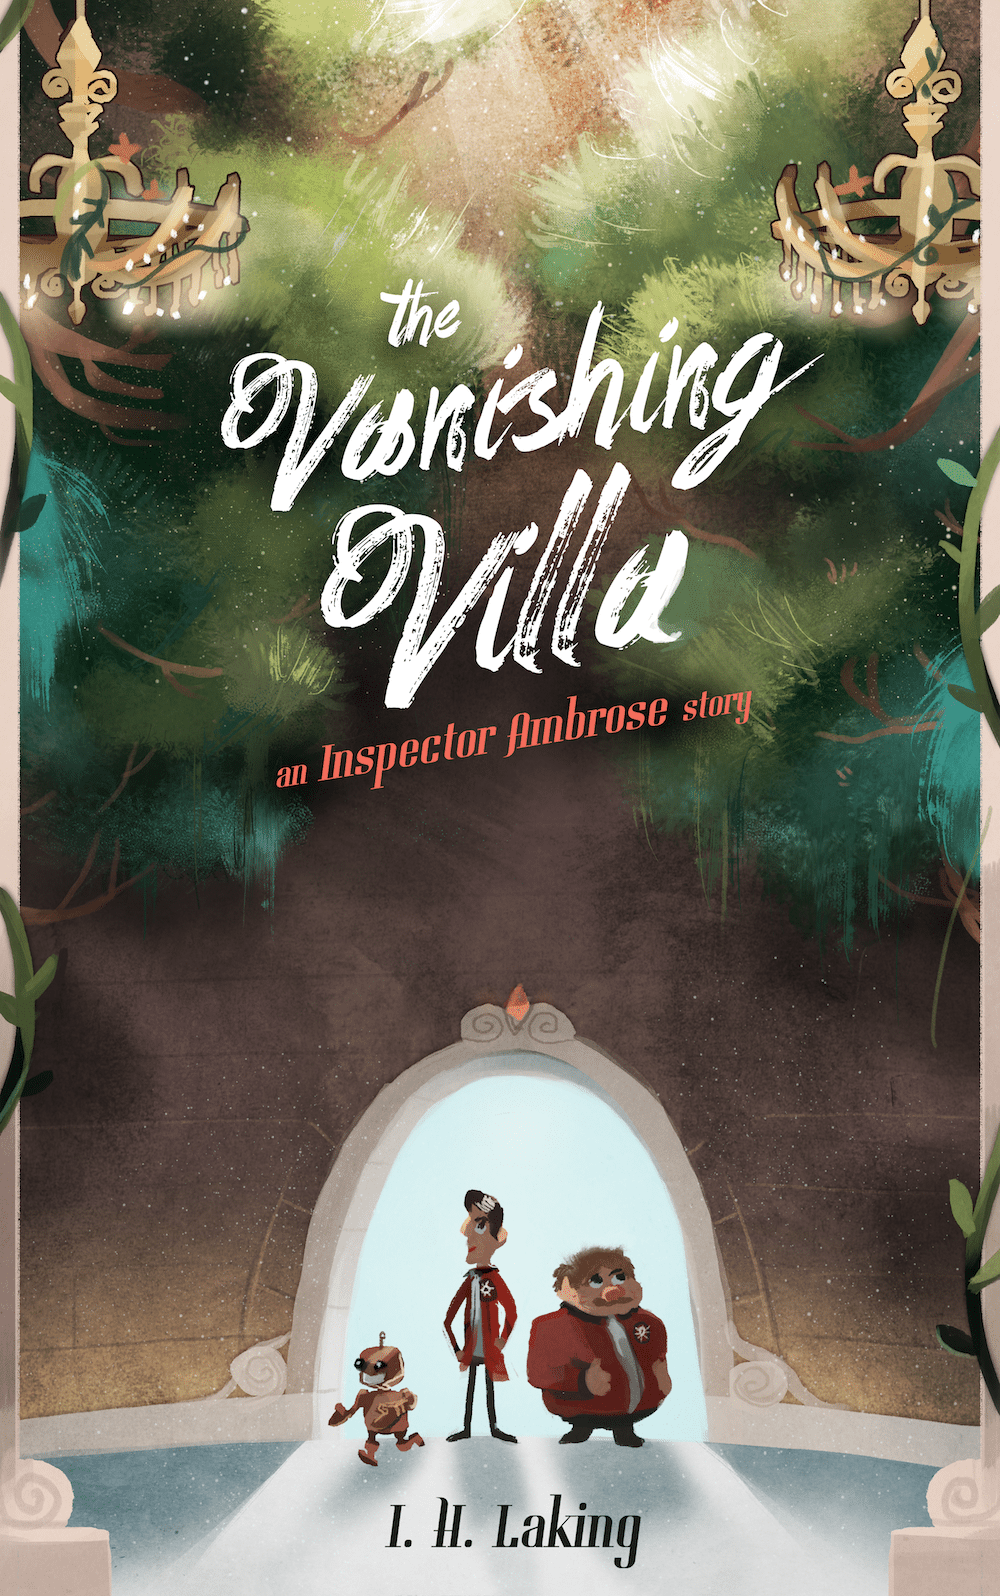 The Vanishing Villa book cover art by Louie Zong via ArtCorgi